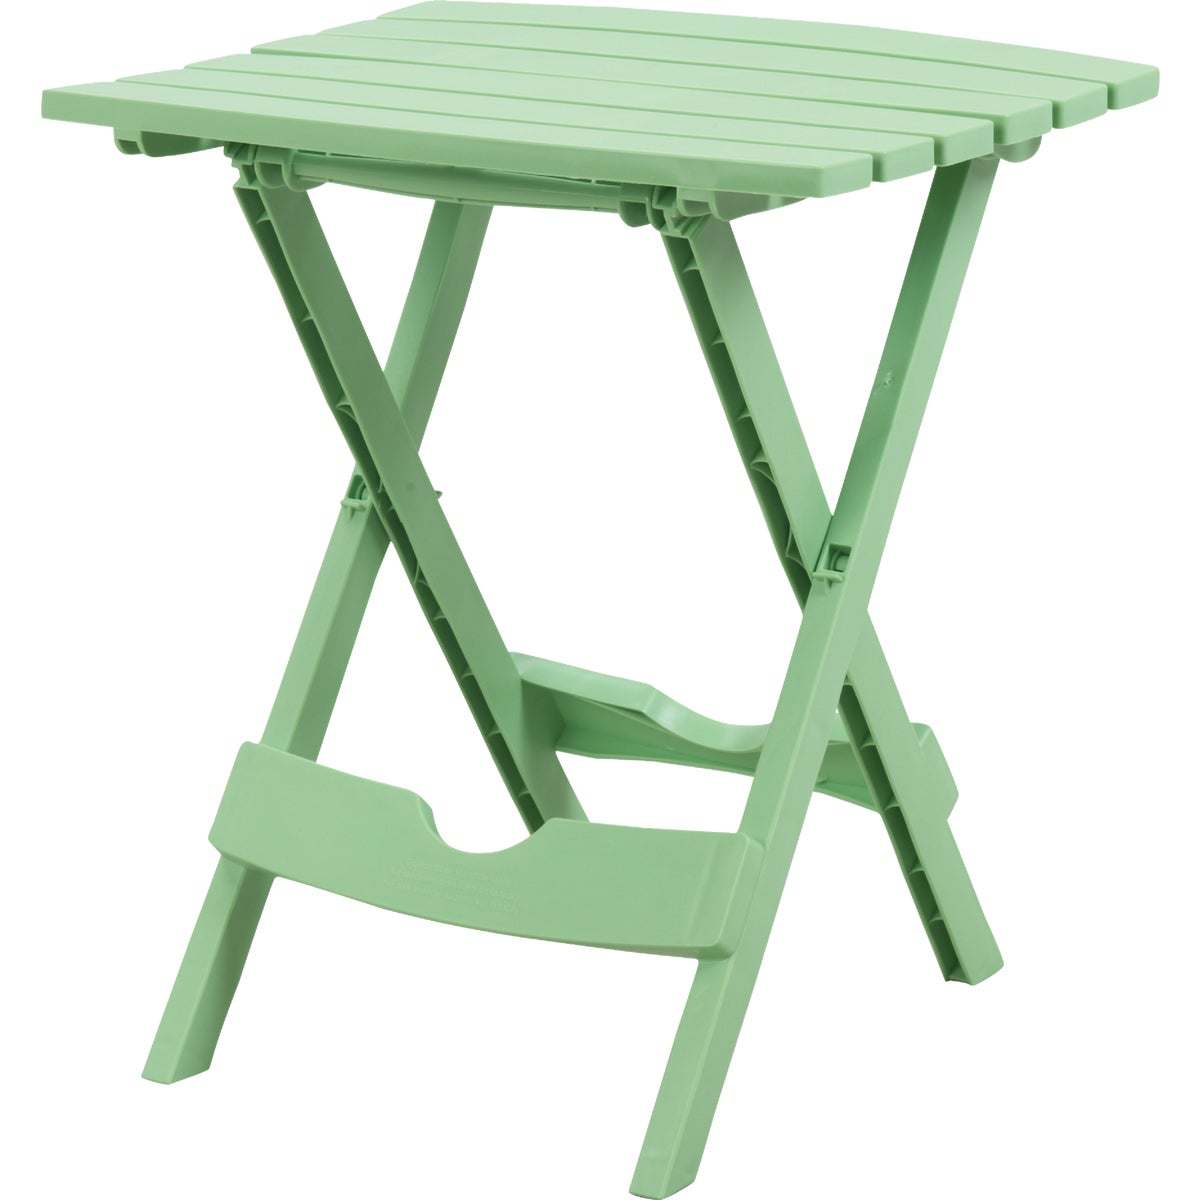 SUMR GRN QUIK FOLD TABLE